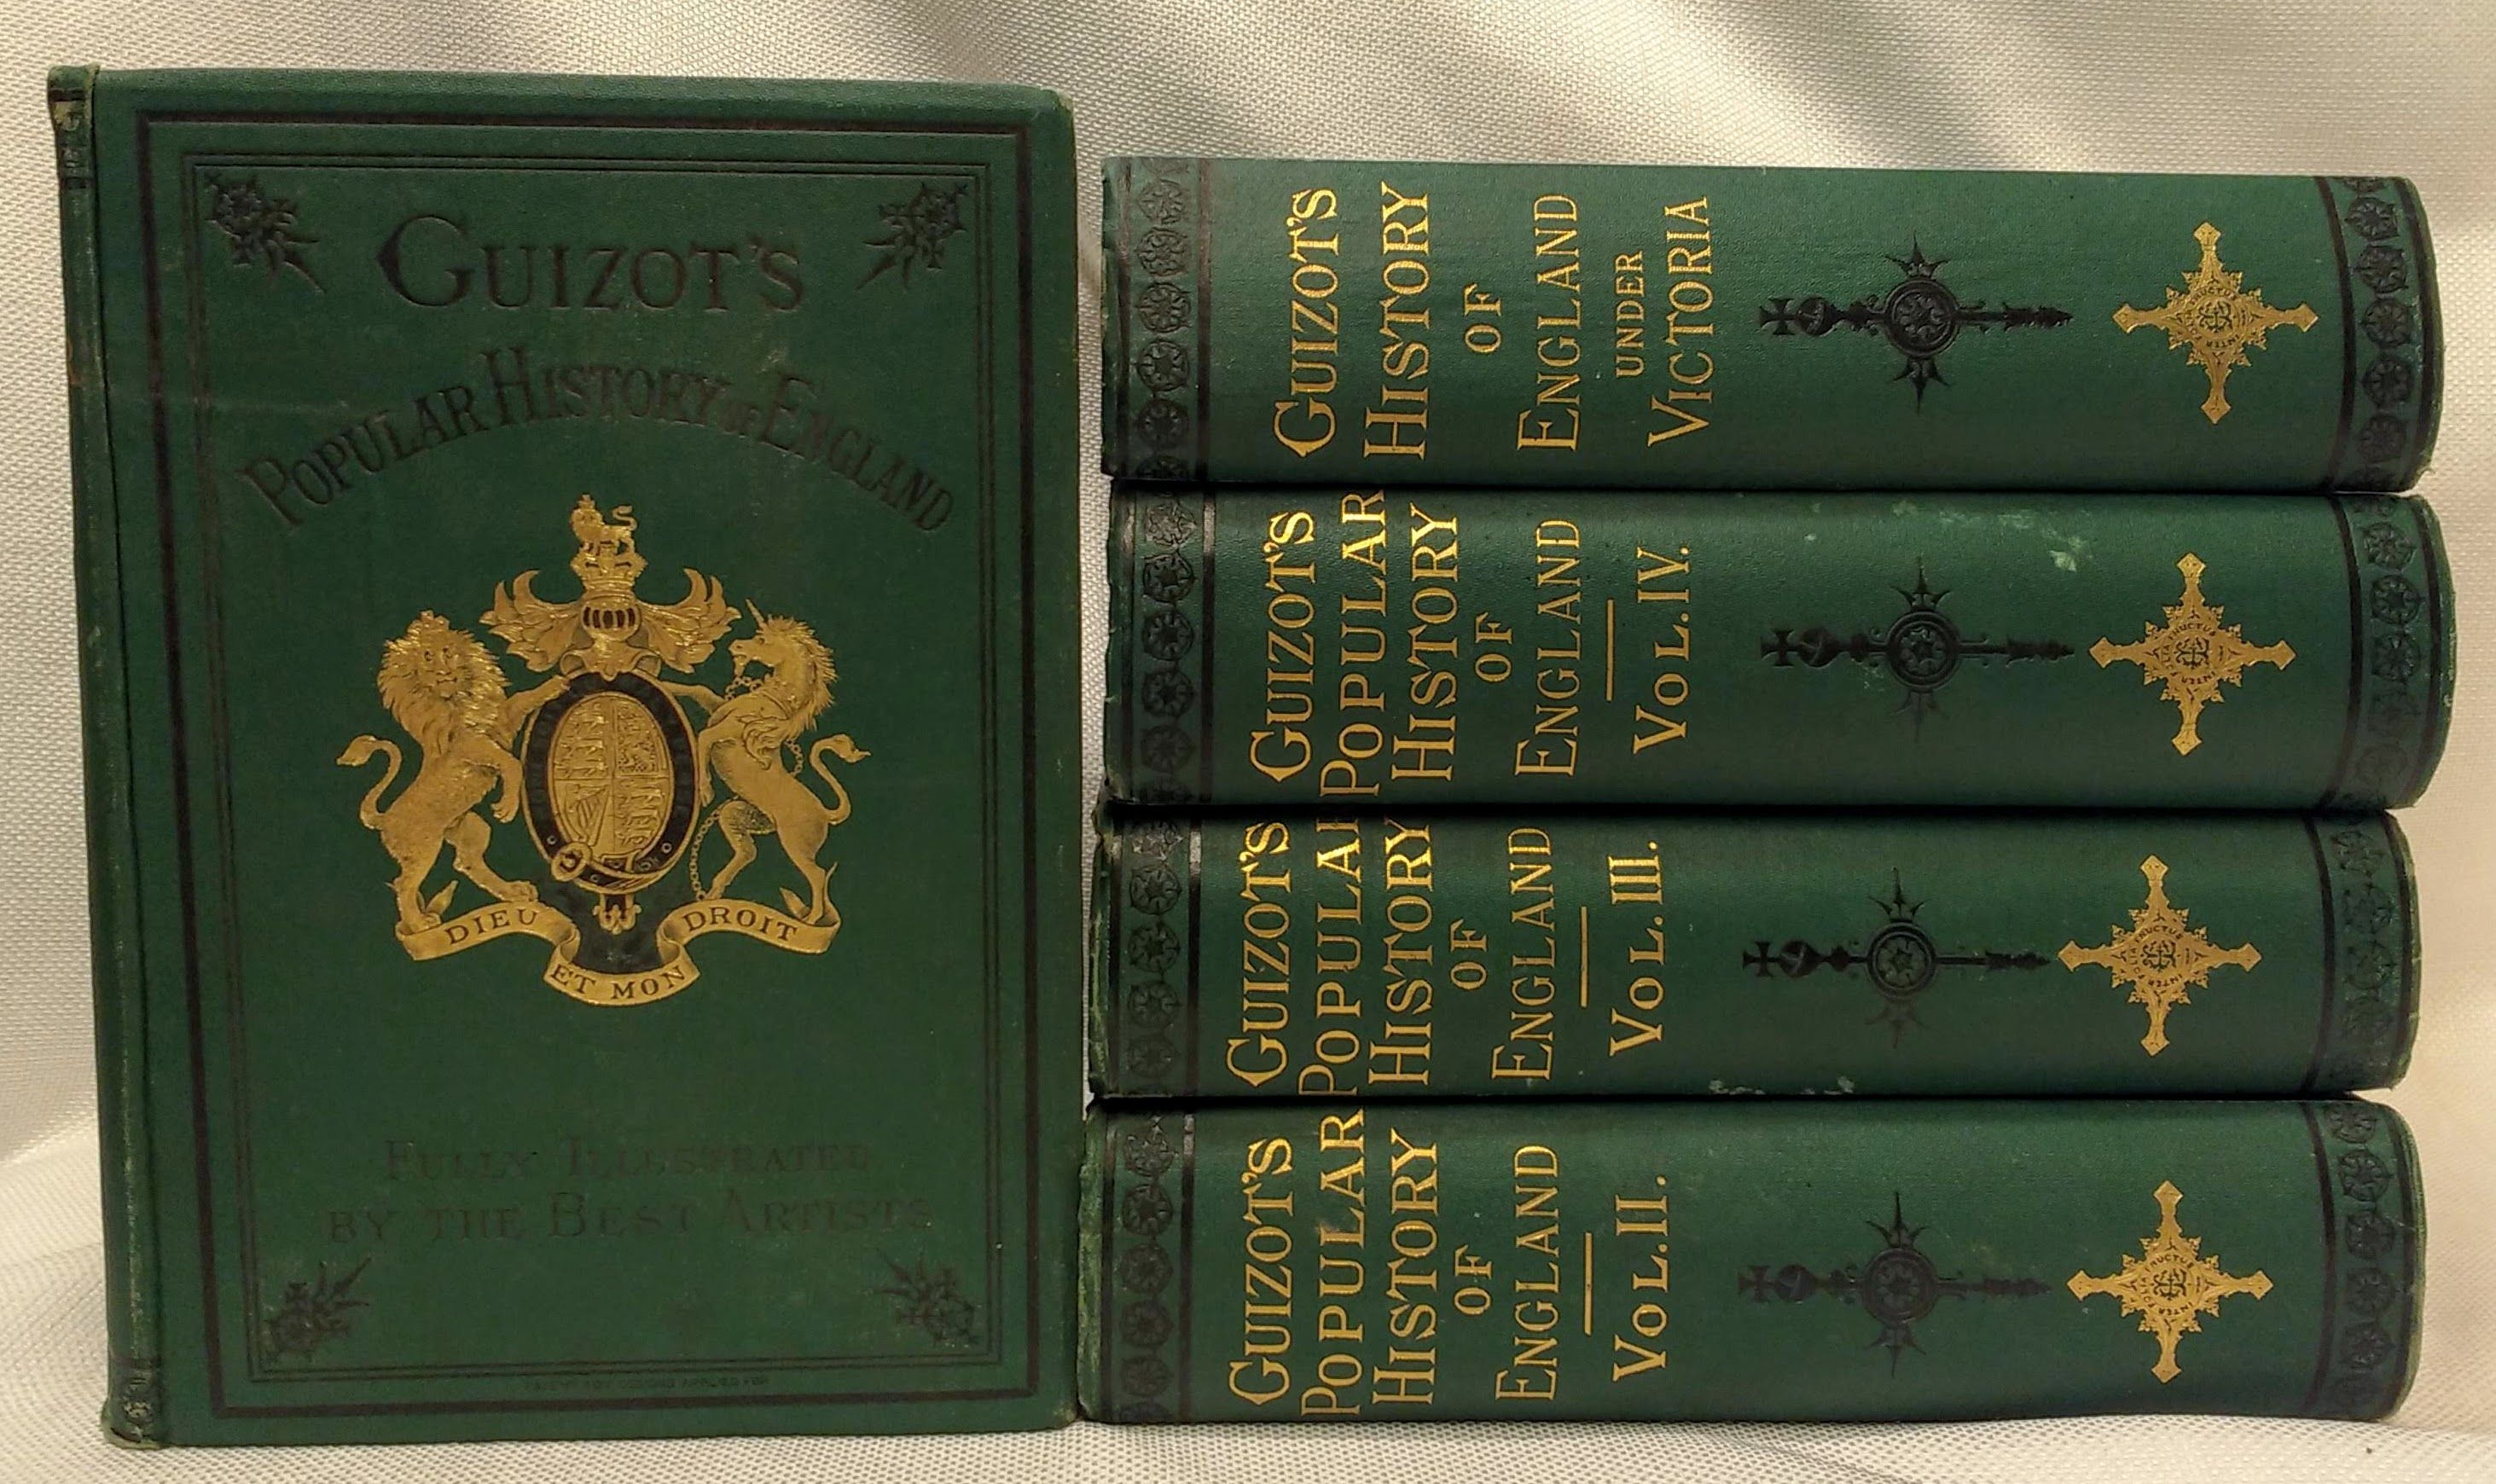 A Popular History of England from the Earliest Times to the Accession of Victoria (5 Volumes), M. Guizot; Ripley, M.M. (translator)